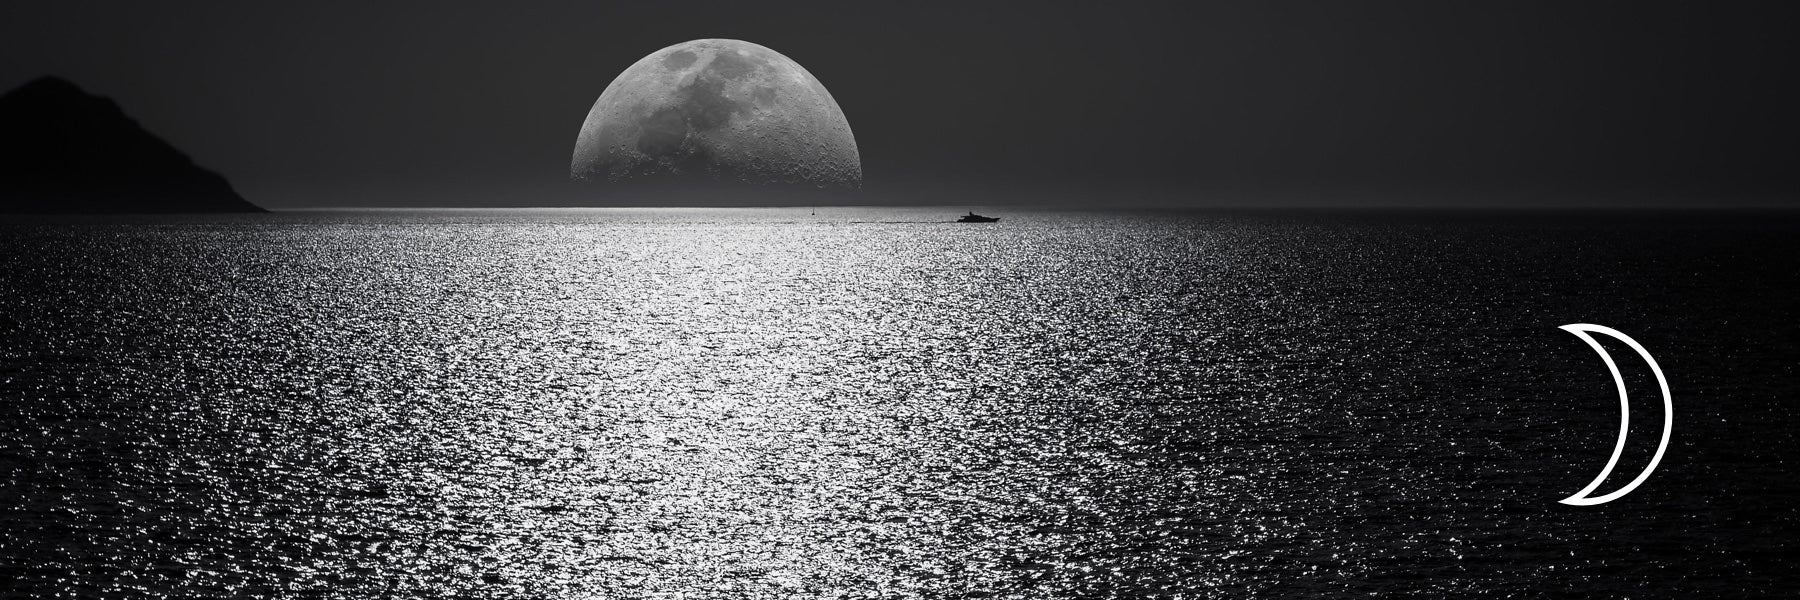 Full Moon and the Ocean